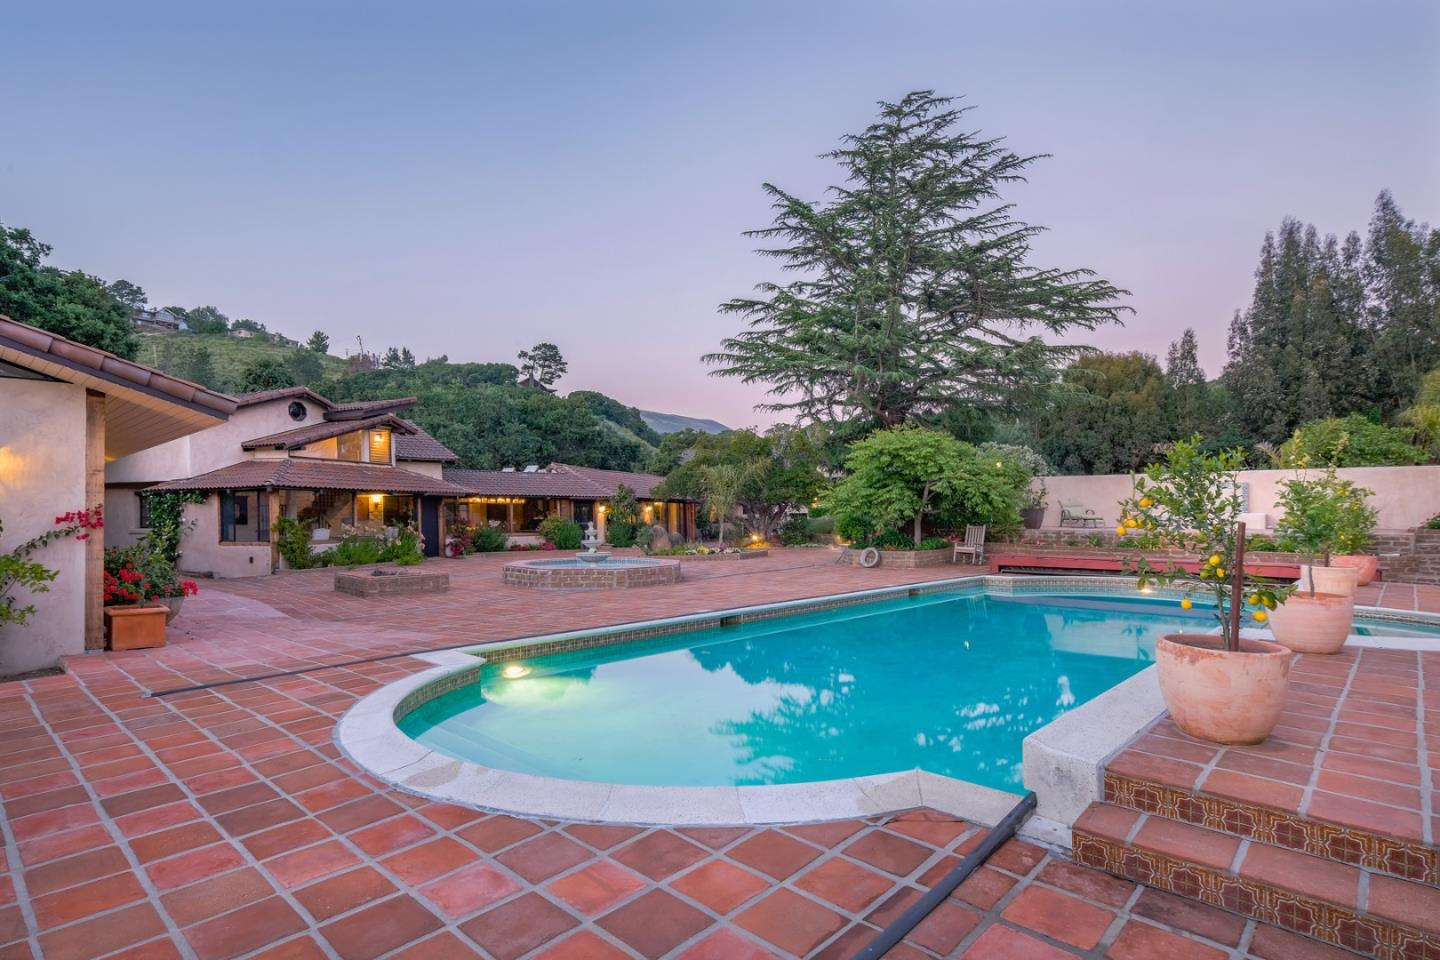 52 Holman Road, CARMEL VALLEY, CA 93924